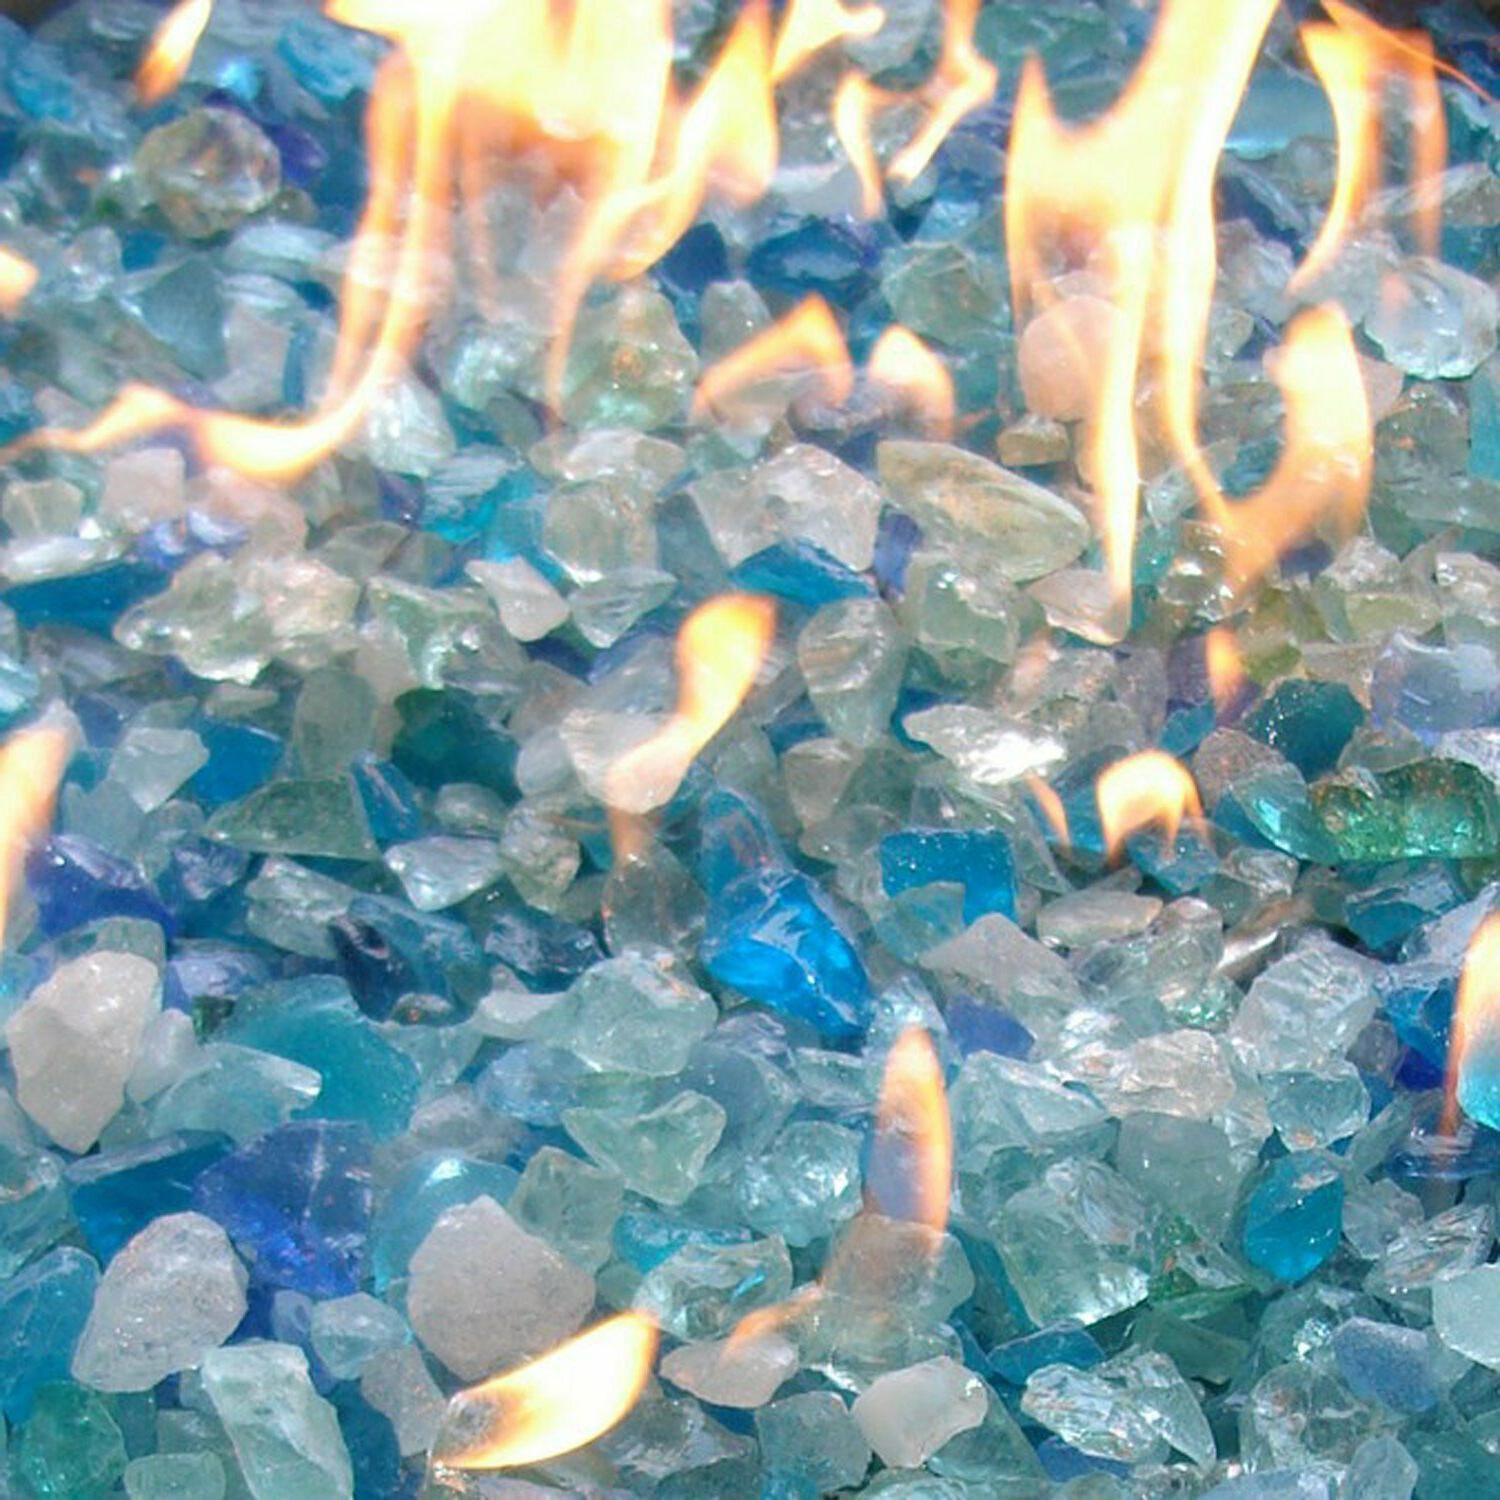 Fire For Outdoor Propane Fireplace Crystals 10 lbs